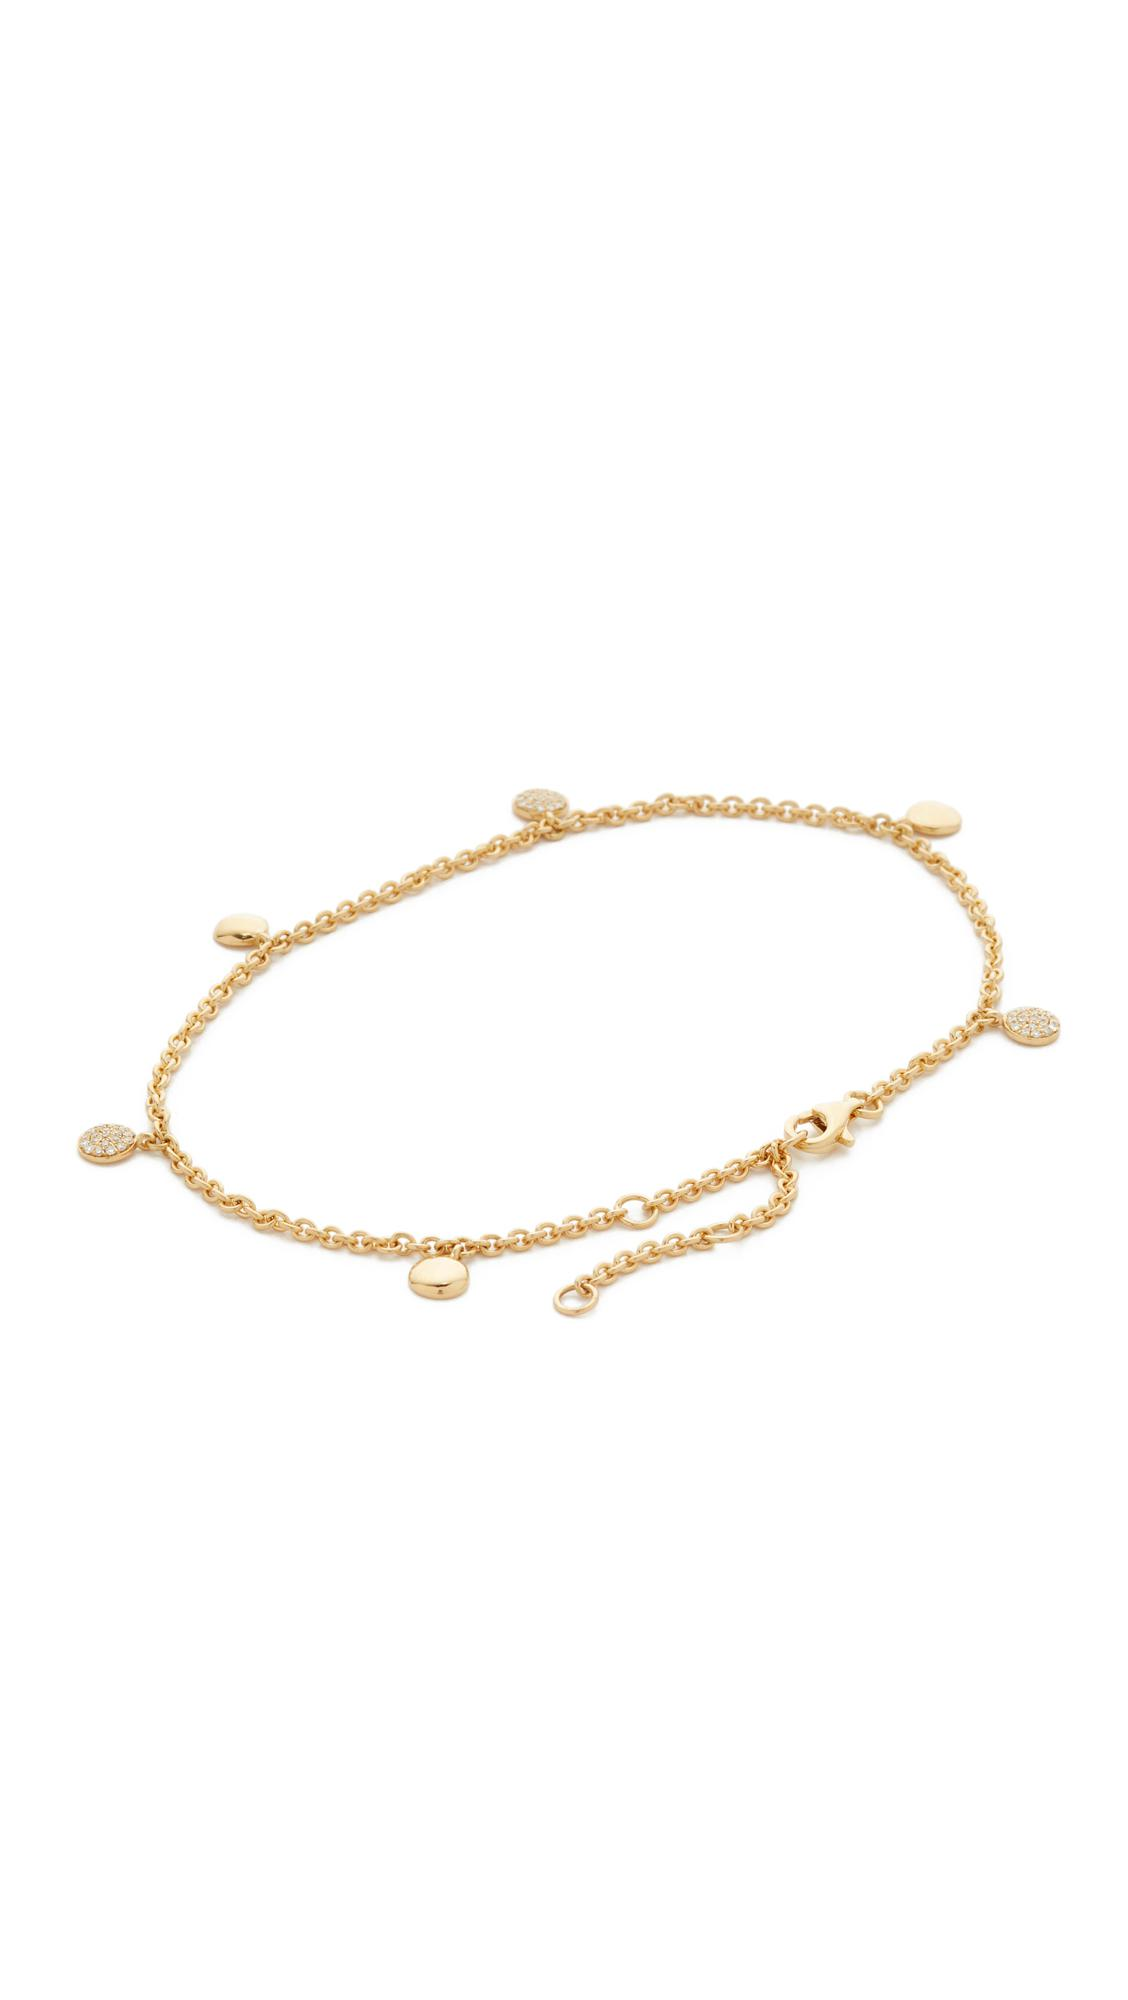 karat chain women anklet com figaro dp men usa pure suitable for bracelet gold amazon filled product